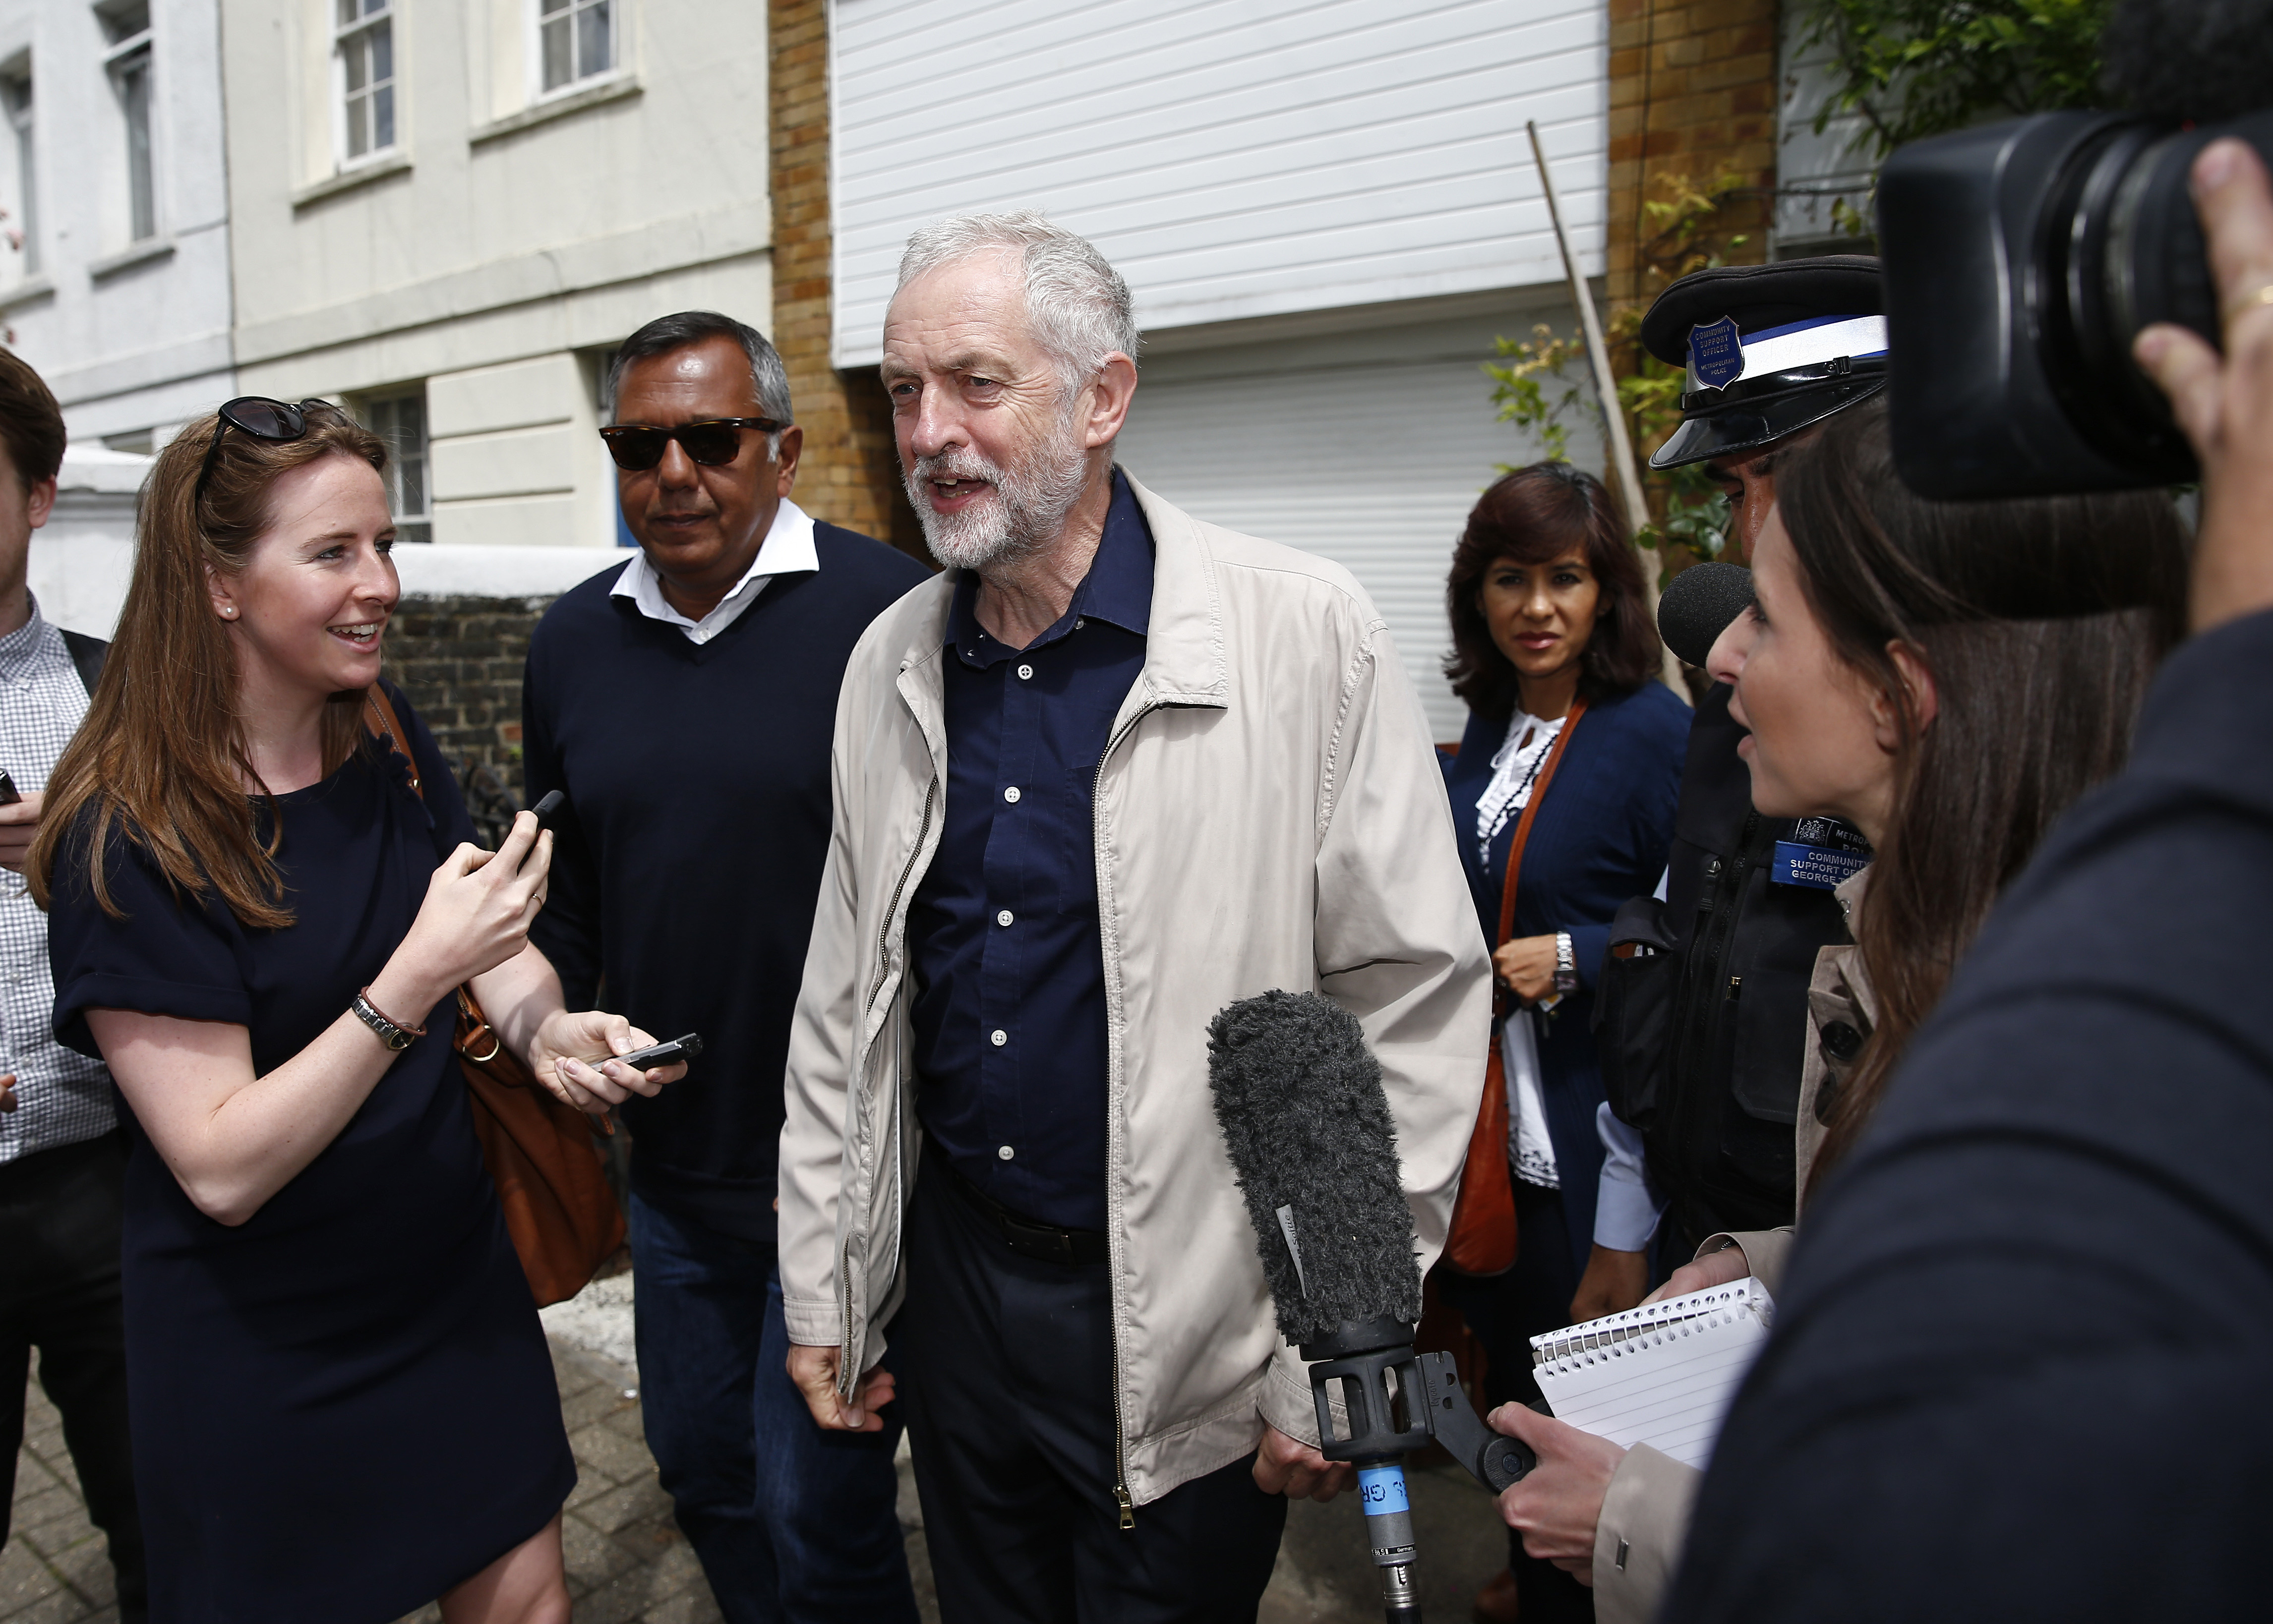 Britain's opposition Labour Party leader Jeremy Corbyn (C) leaves his home in London, June 26, 2016.